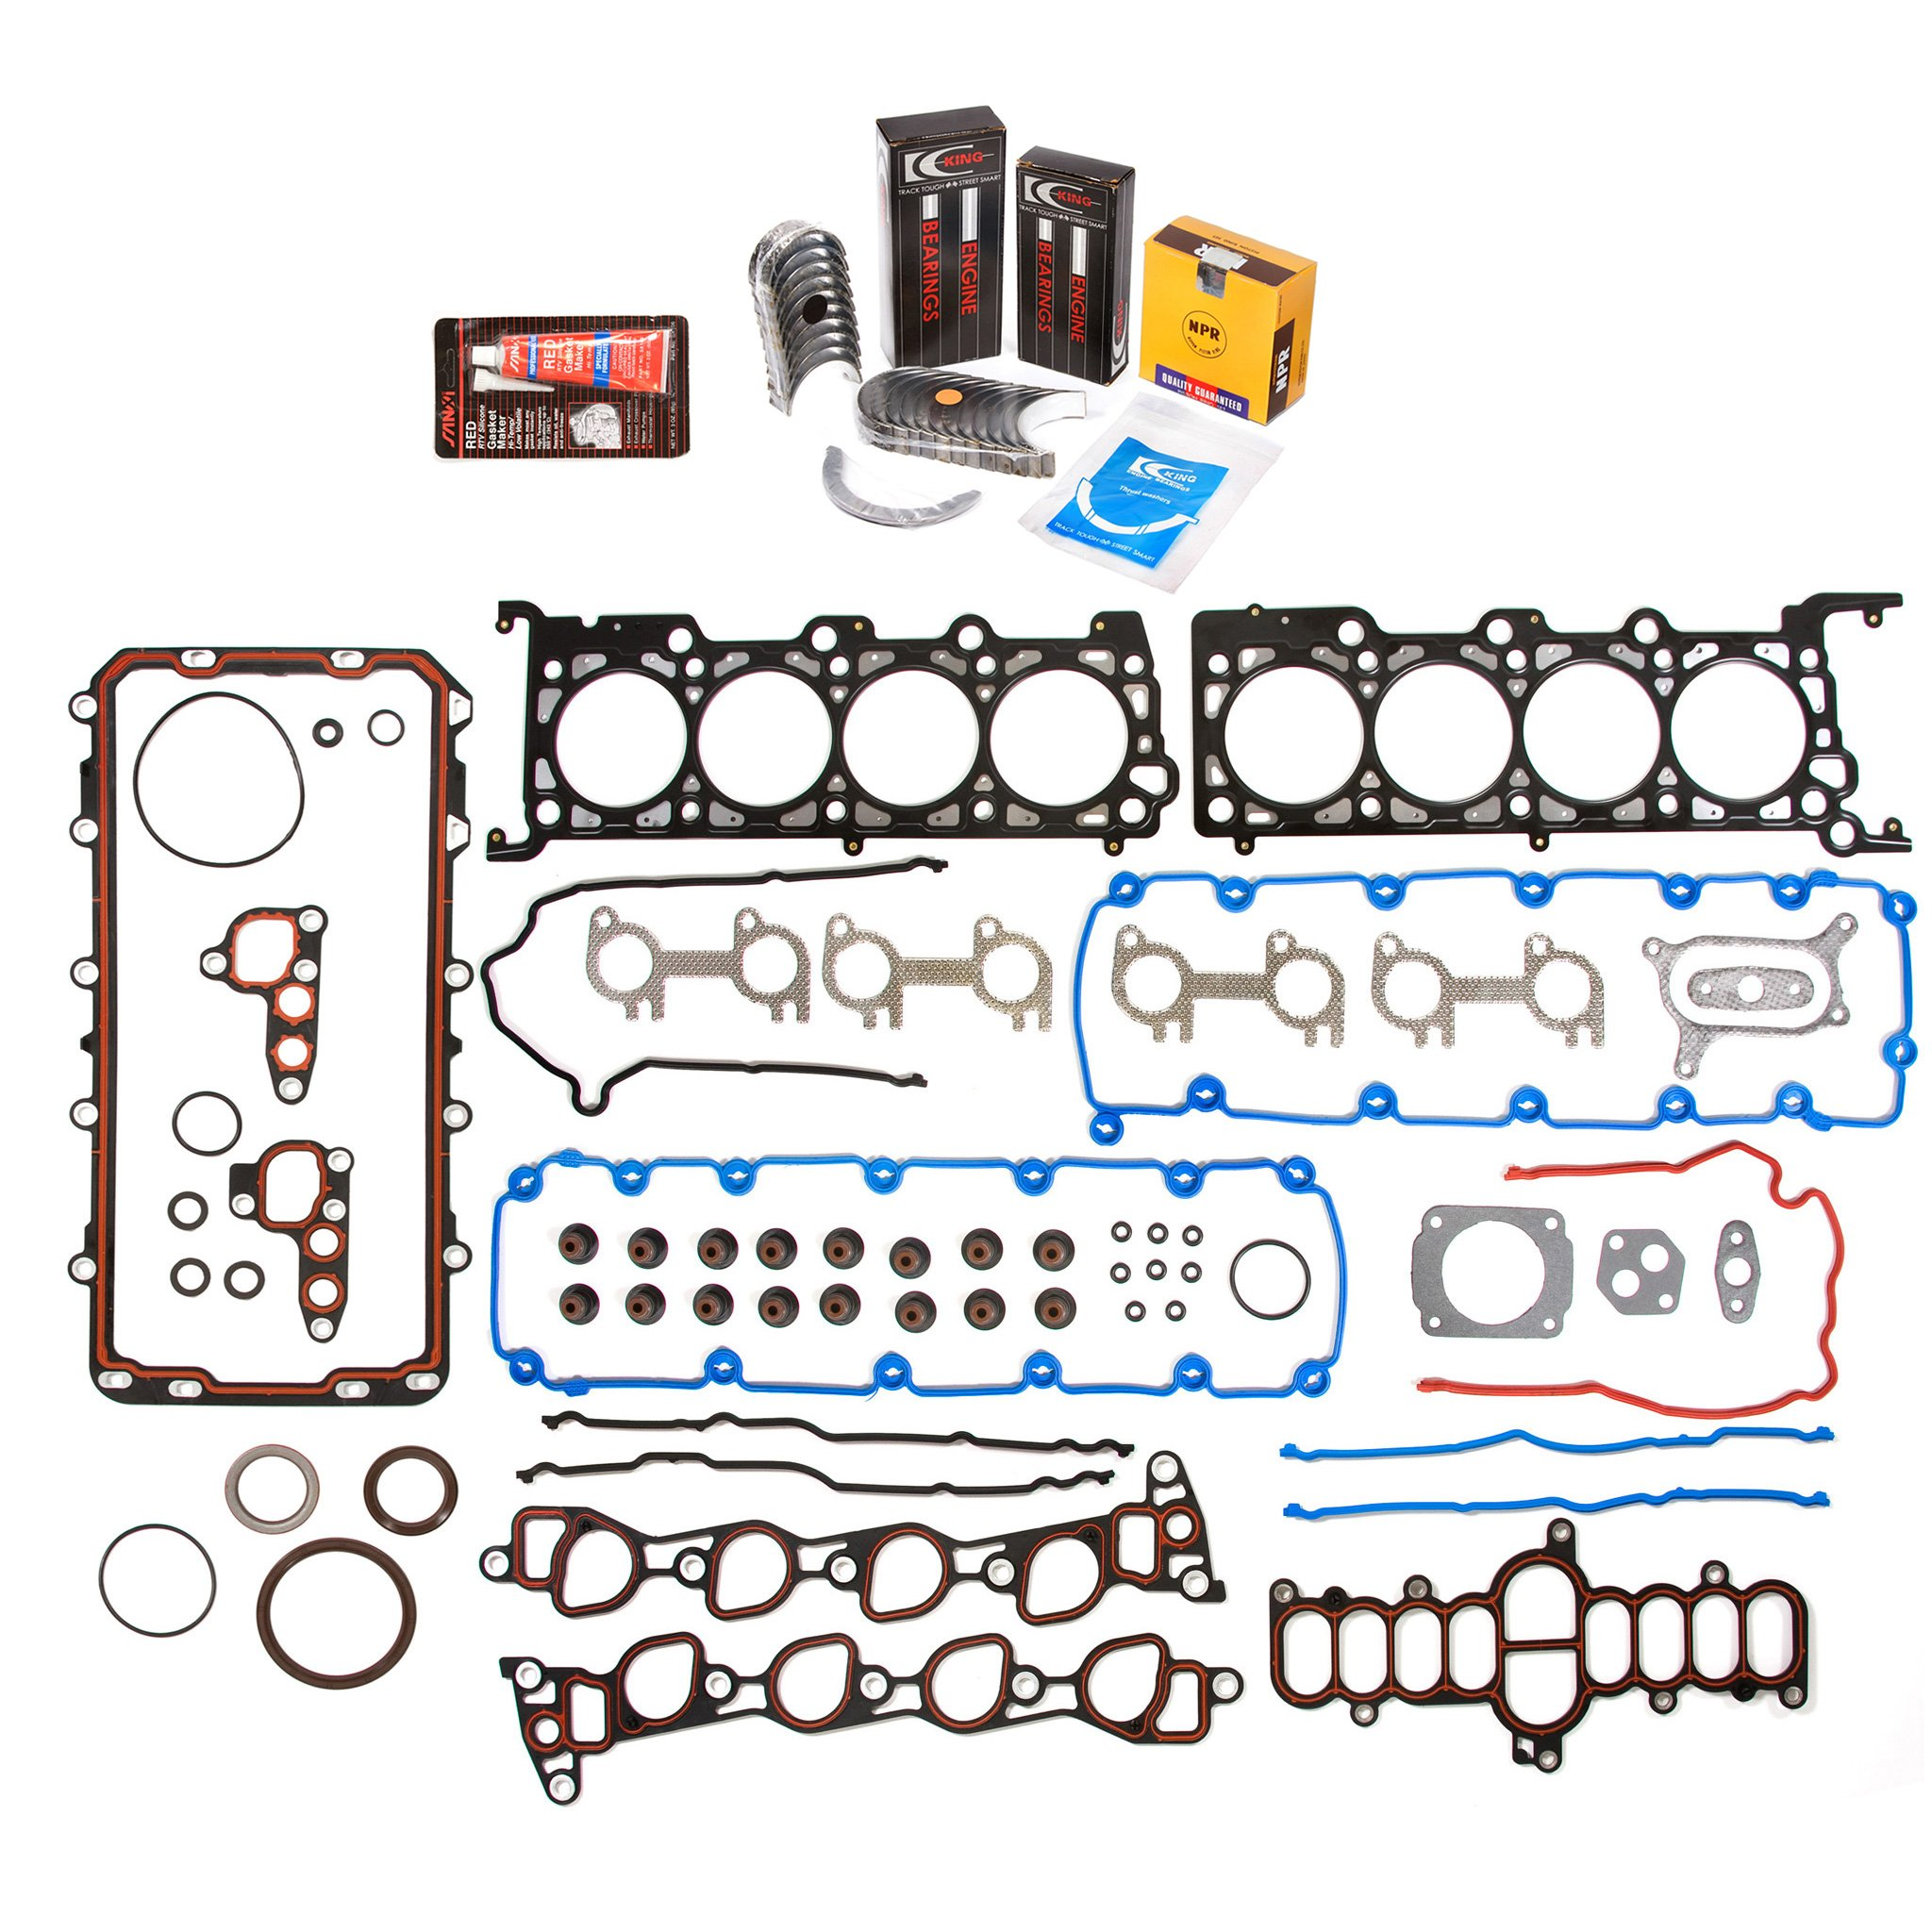 Evergreen Engine Rering Kit FSBRR8-21203 97-99 Ford E150 E250 F150 F250 4.6 SOHC WINDSOR Full Gasket Set, Standard Size Main Rod Bearings, 0.50mm / 0.020'' Oversize Piston Rings by Evergreen Parts And Components